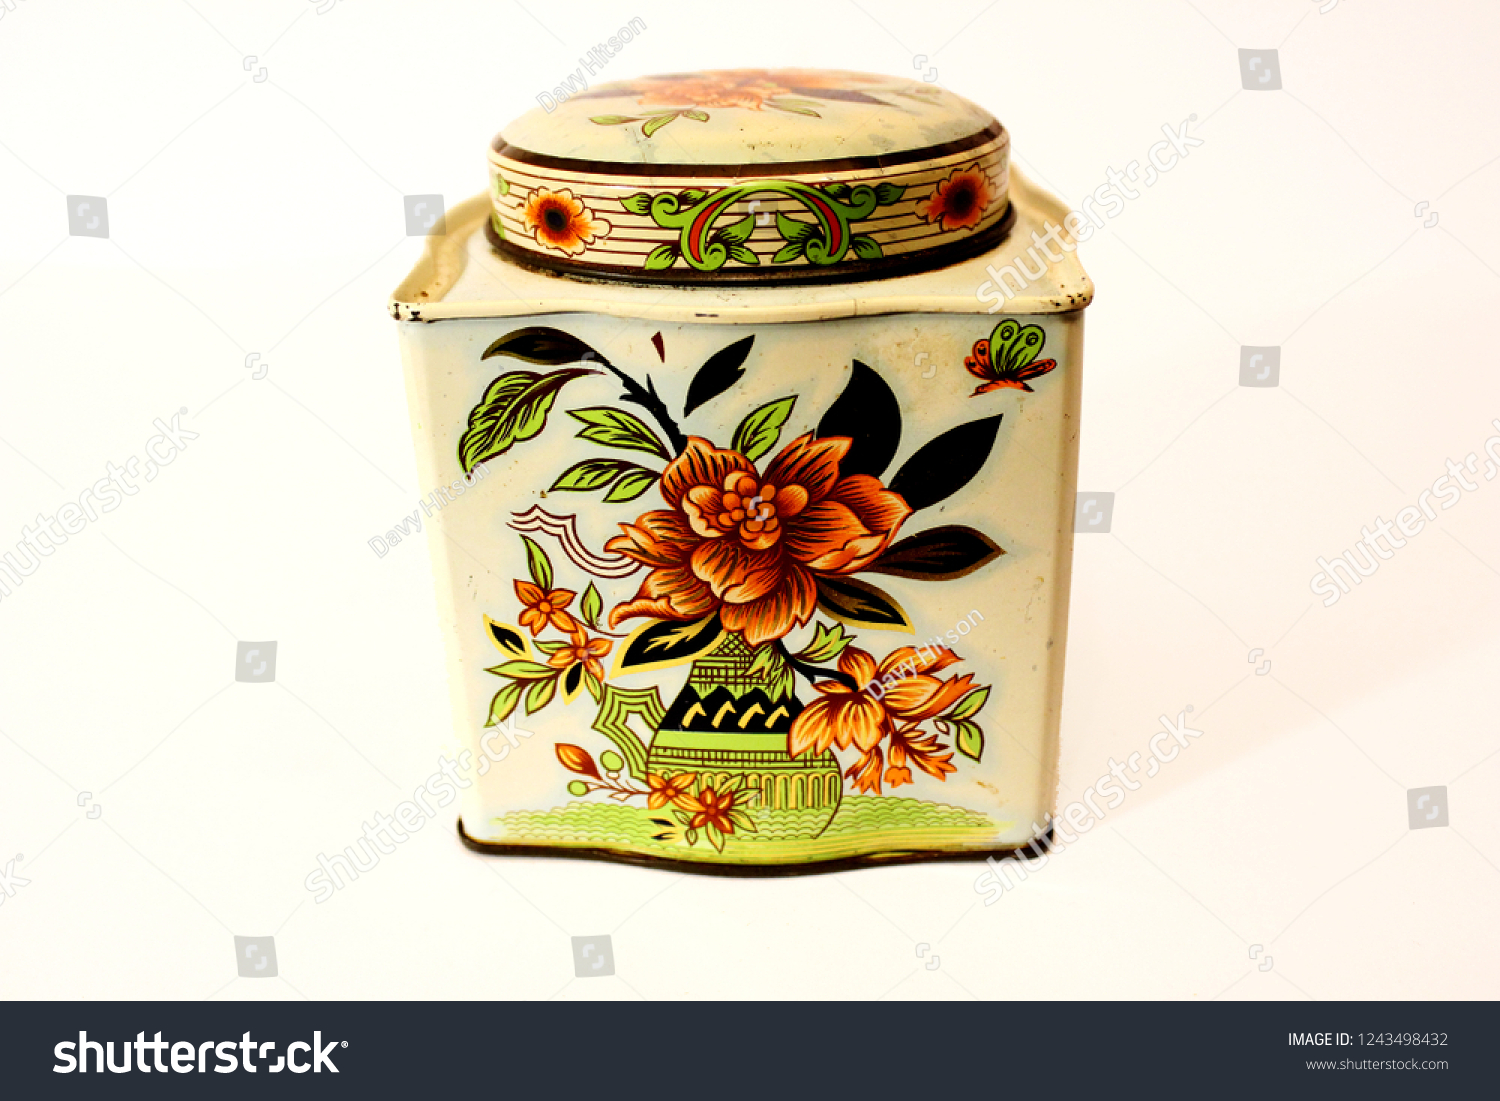 Vintage egg shell pantry tin container with decorative and vibrant floral  pattern.